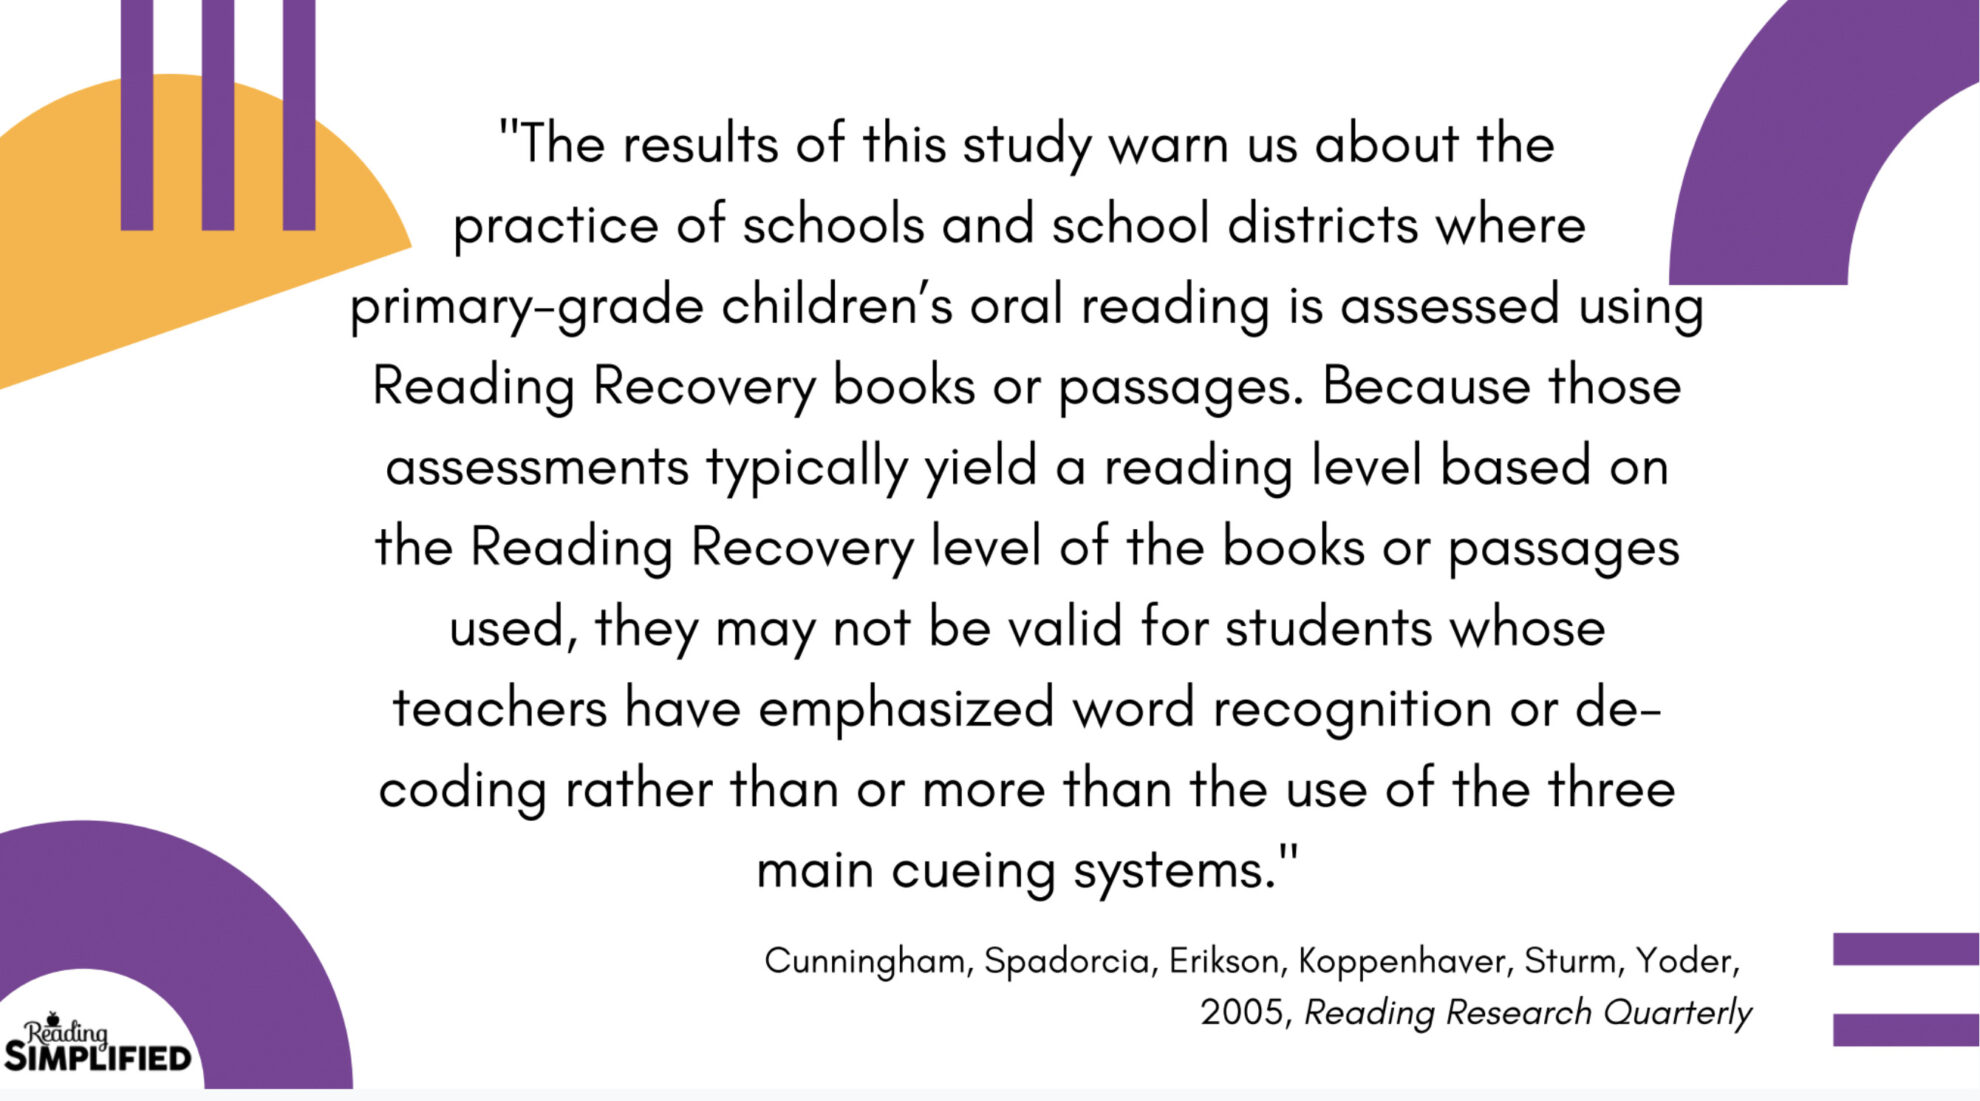 Reading Research Quarterly by Dr. Jim Cunningham